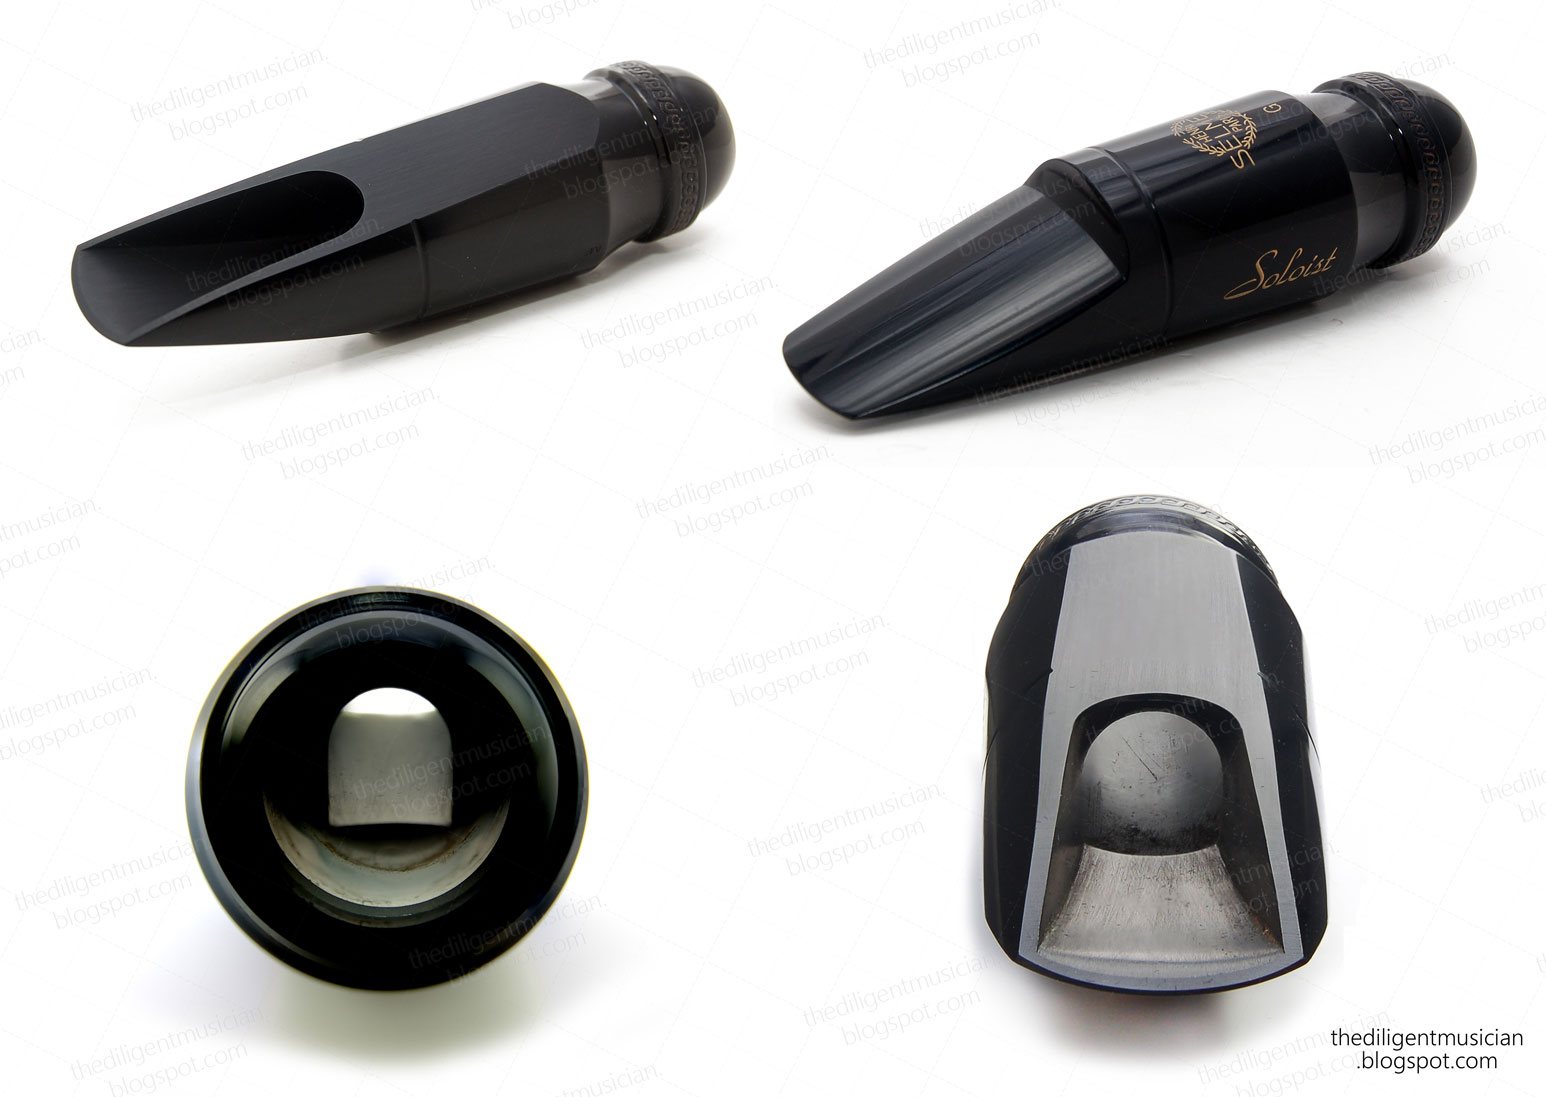 Photo montage of the Selmer Soloist alto saxophone mouthpiece